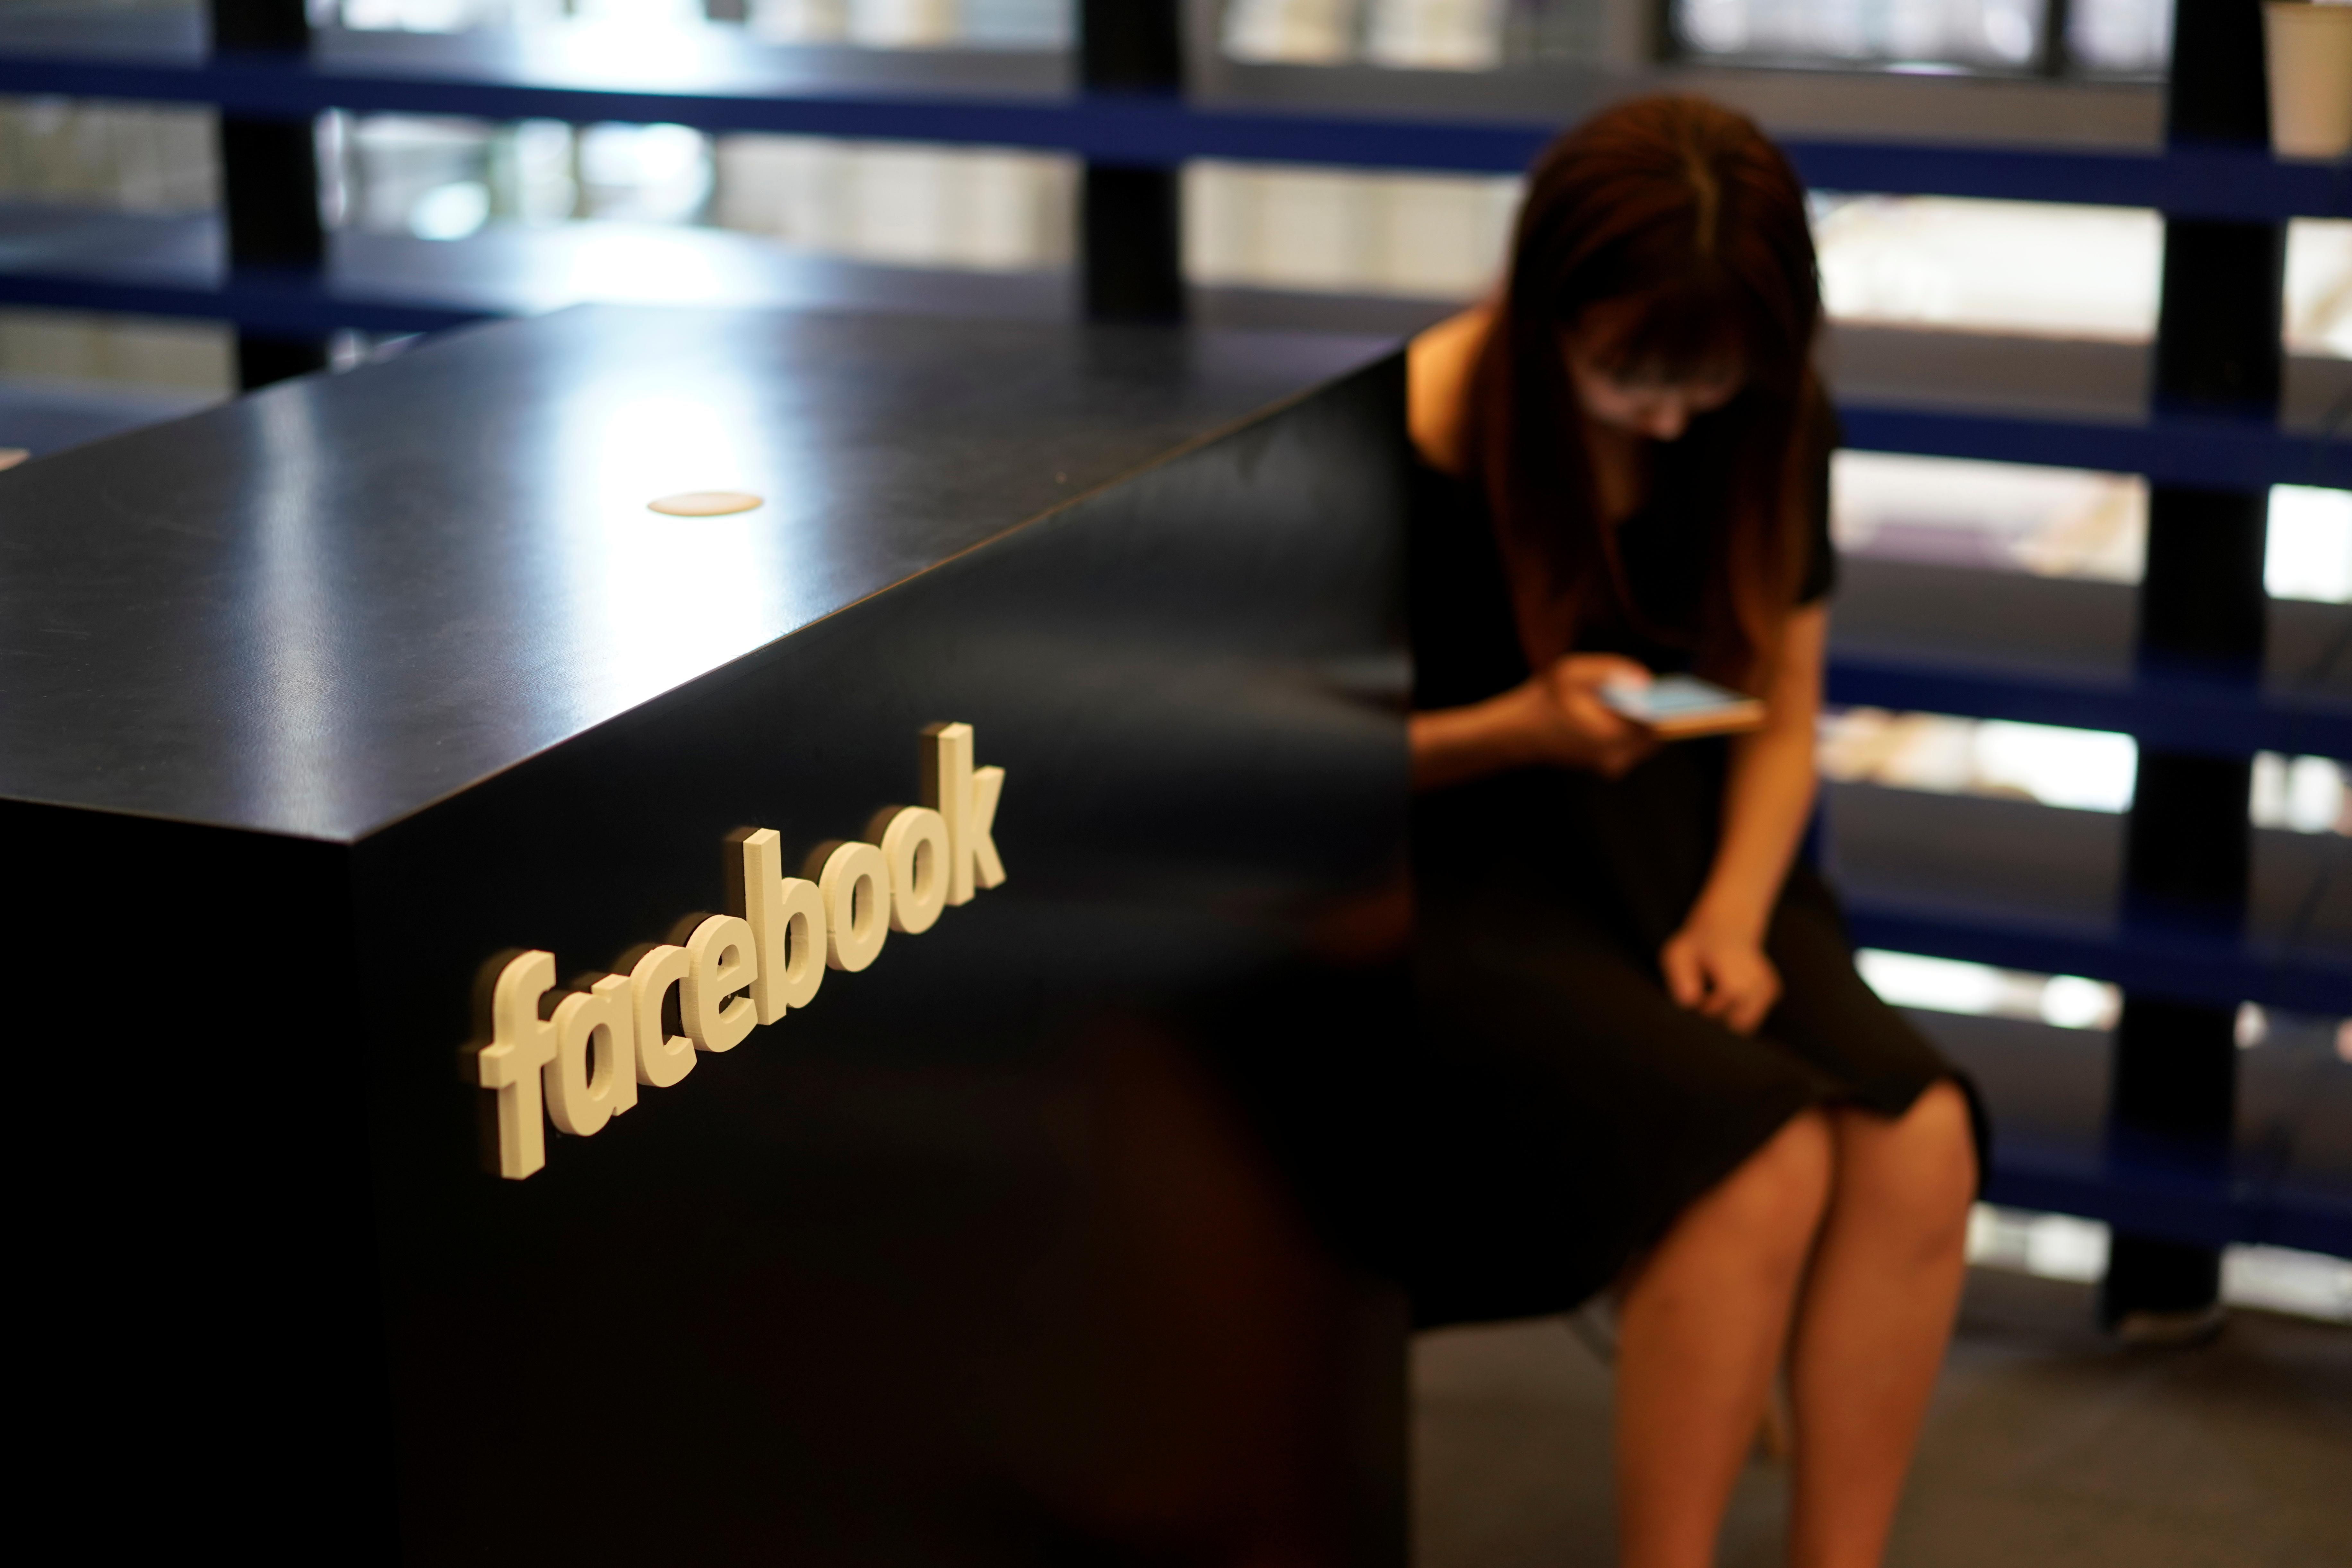 A Facebook sign is seen during the China Digital Entertainment Expo and Conference (ChinaJoy) in Shanghai, China August 3, 2018. Aly Song